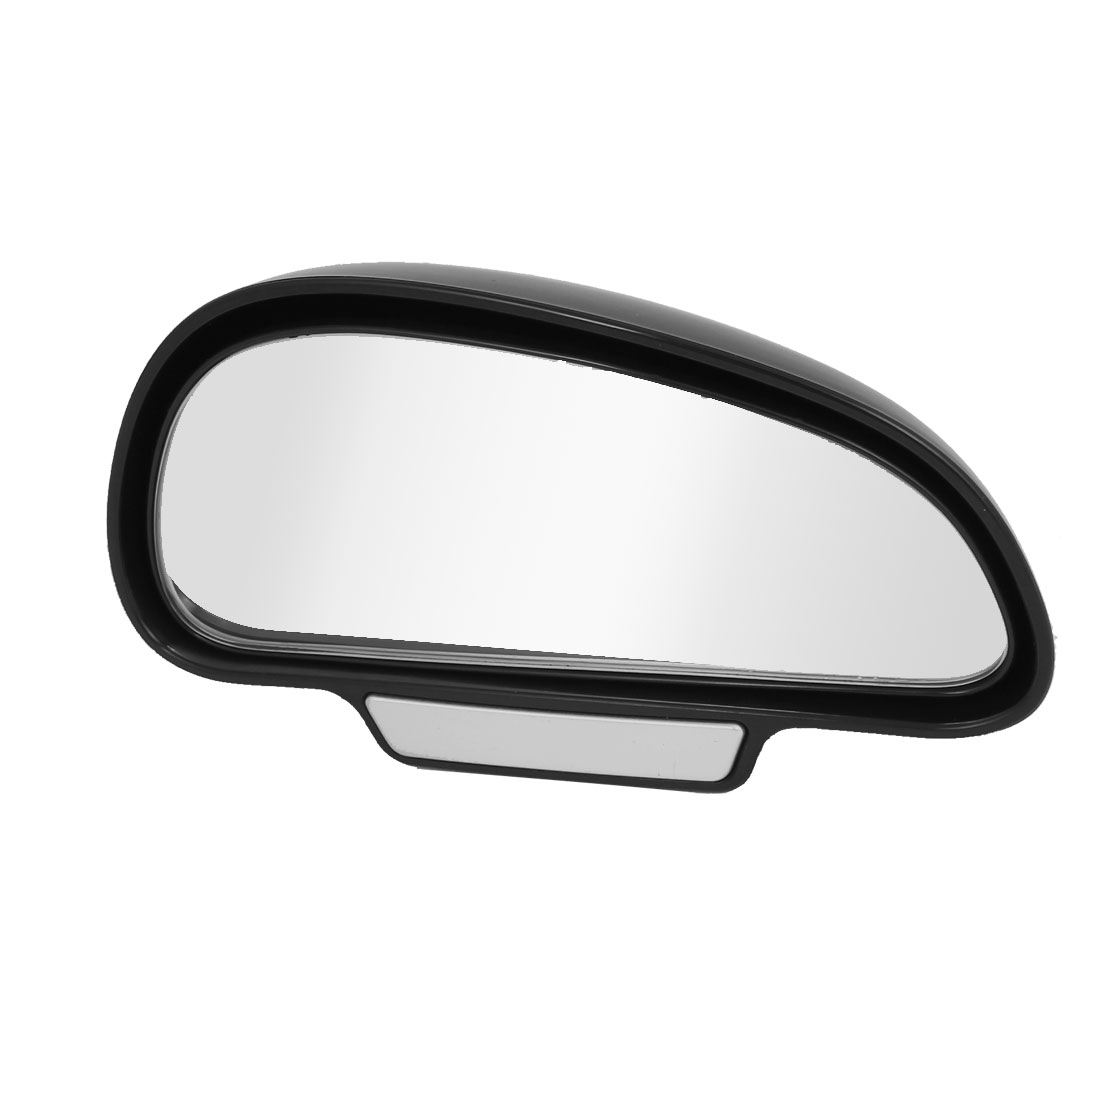 Black Vehicle Wide Angle Convex Right Side Rear View Blind Spot Mirror 13 x 7cm